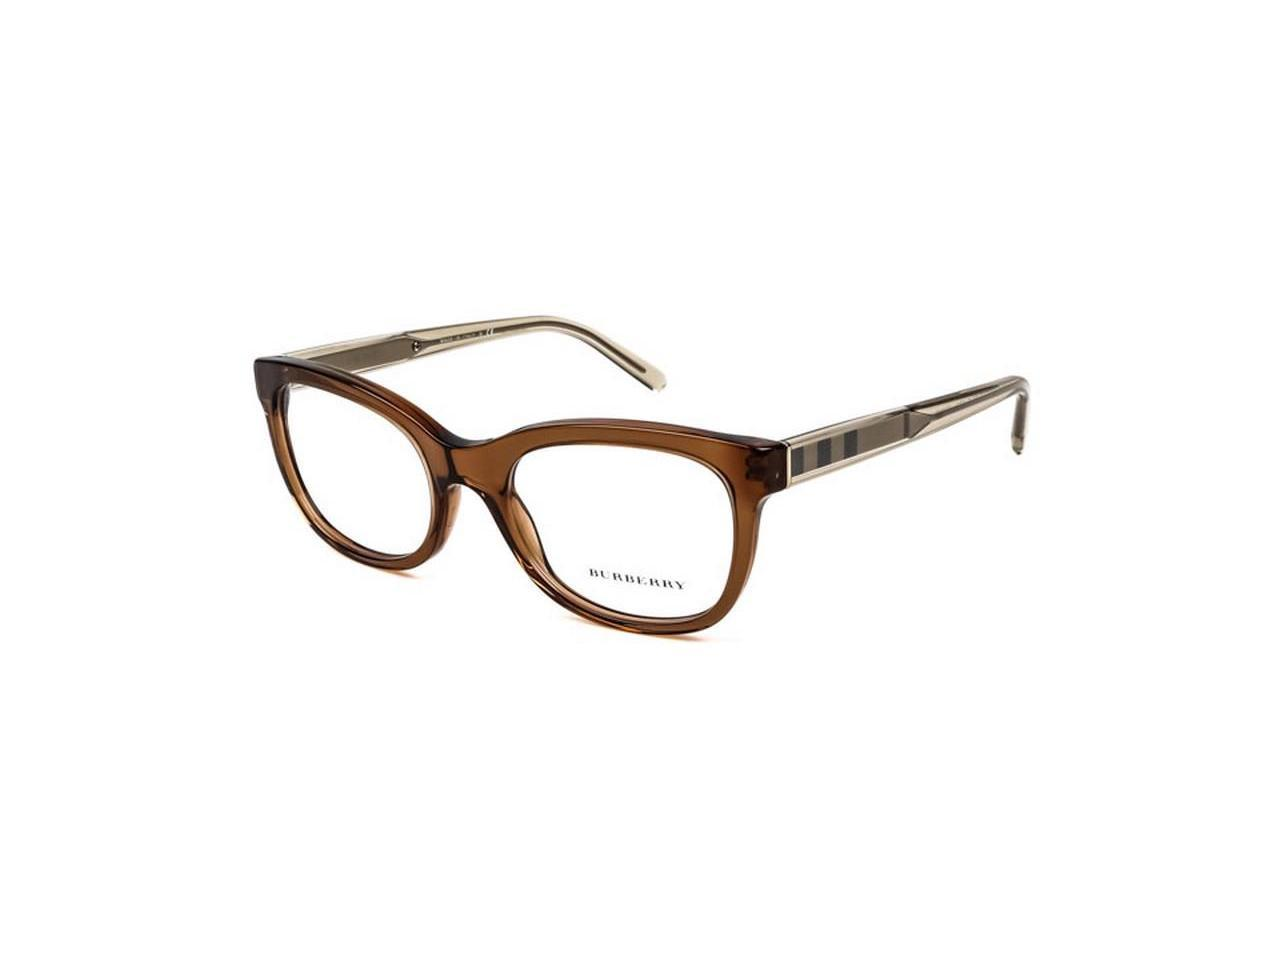 Burberry Eyeglasses BE2213F 3564 Rx-ABLE